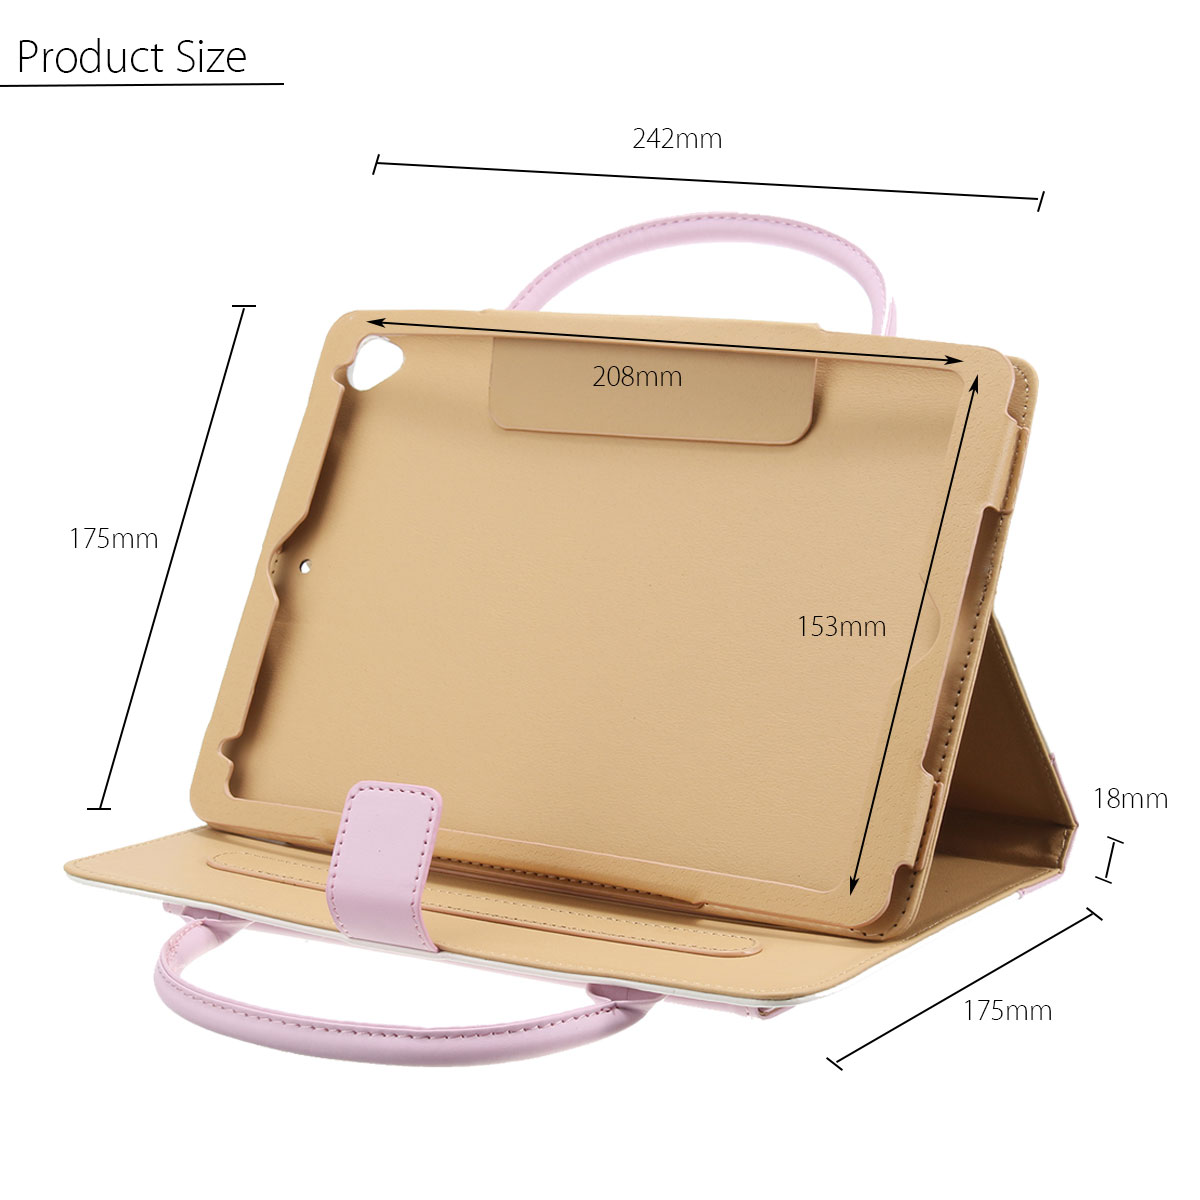 Portable Leather Handbag Magnetic Smart Stand Holder Case Cover For iPad Air 1/2